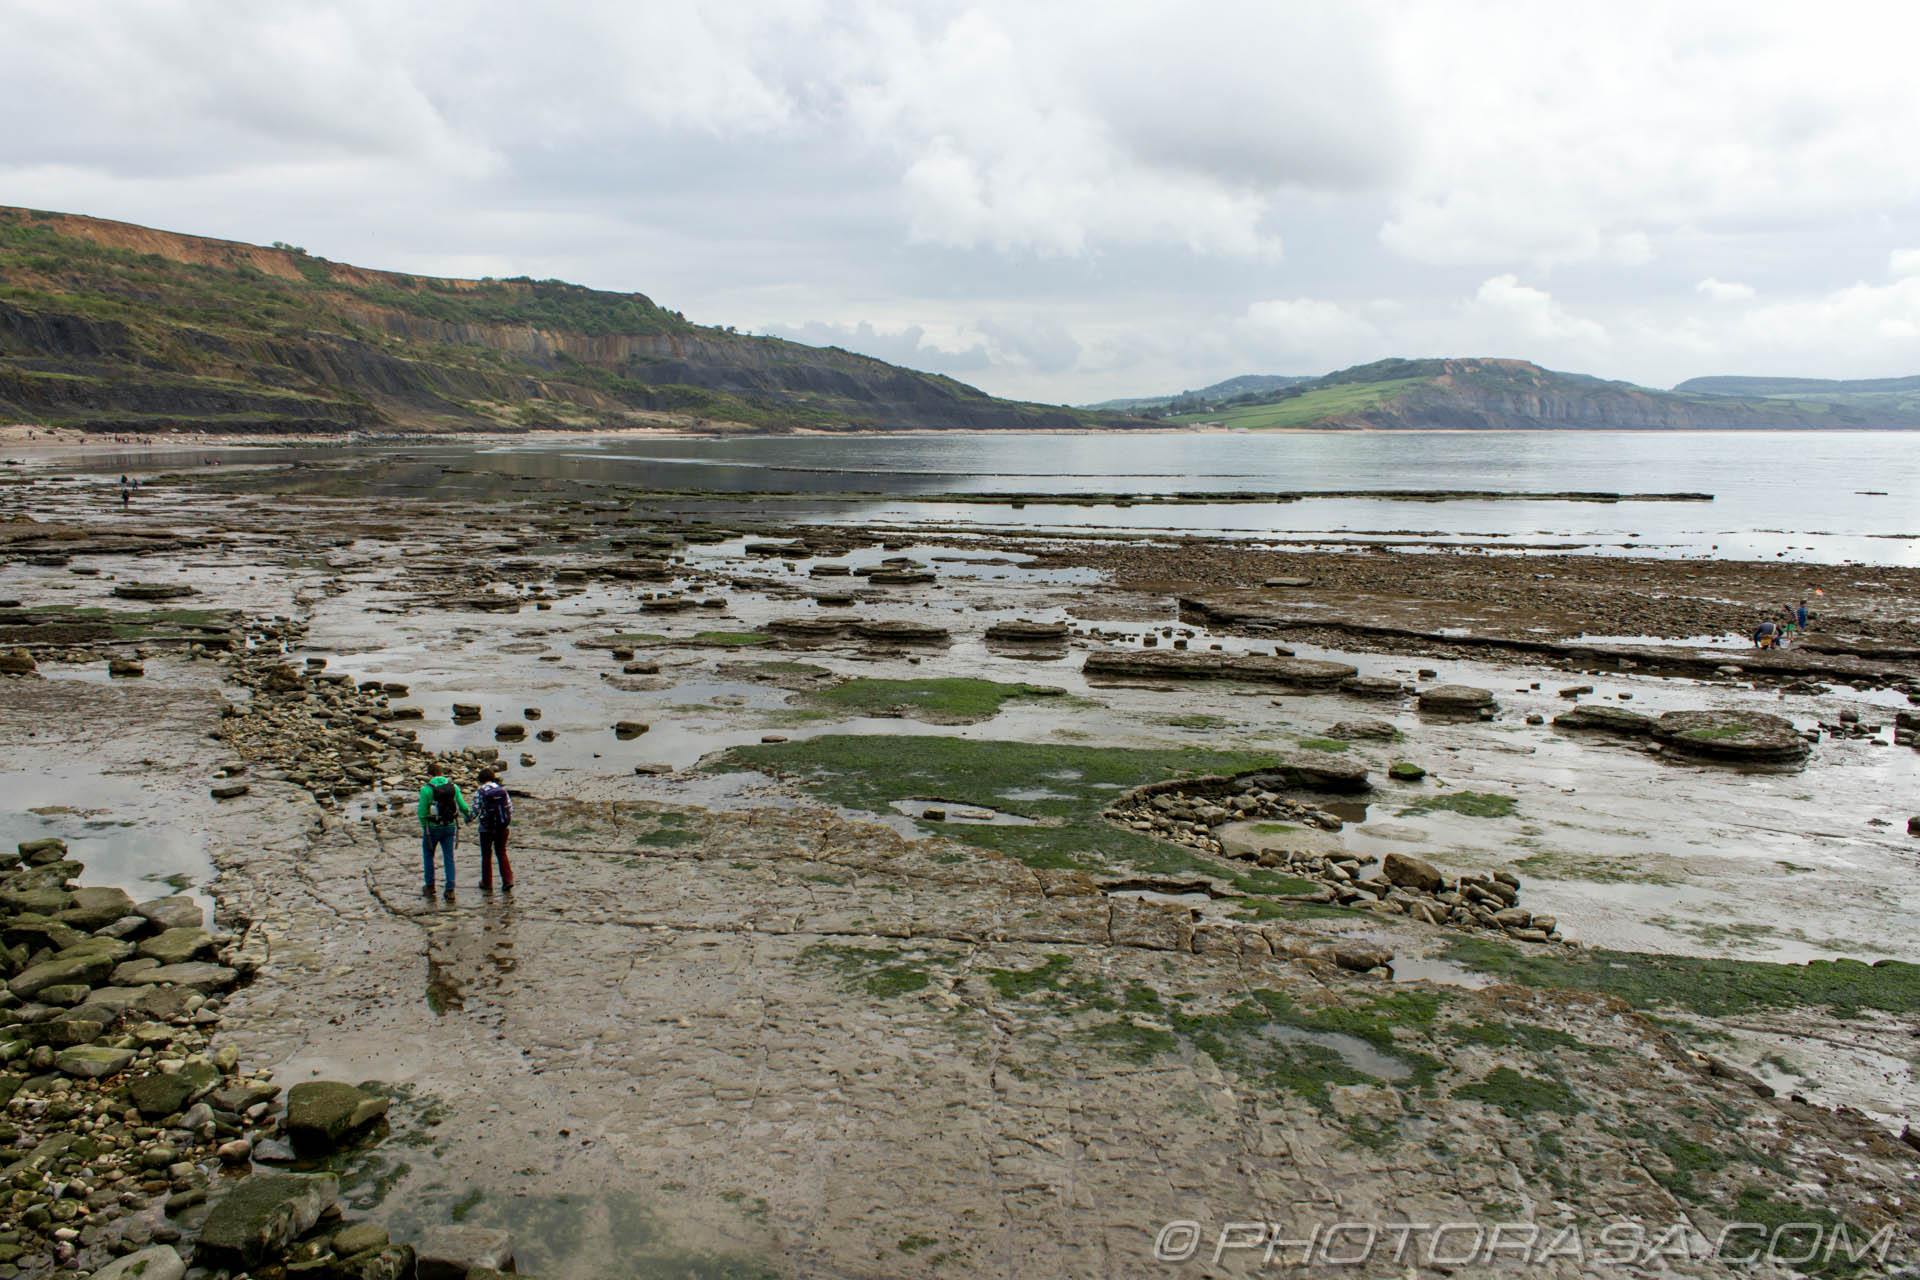 http://photorasa.com/jurassic-coast-lyme-regis/couple-walking-on-jurassic-beach/